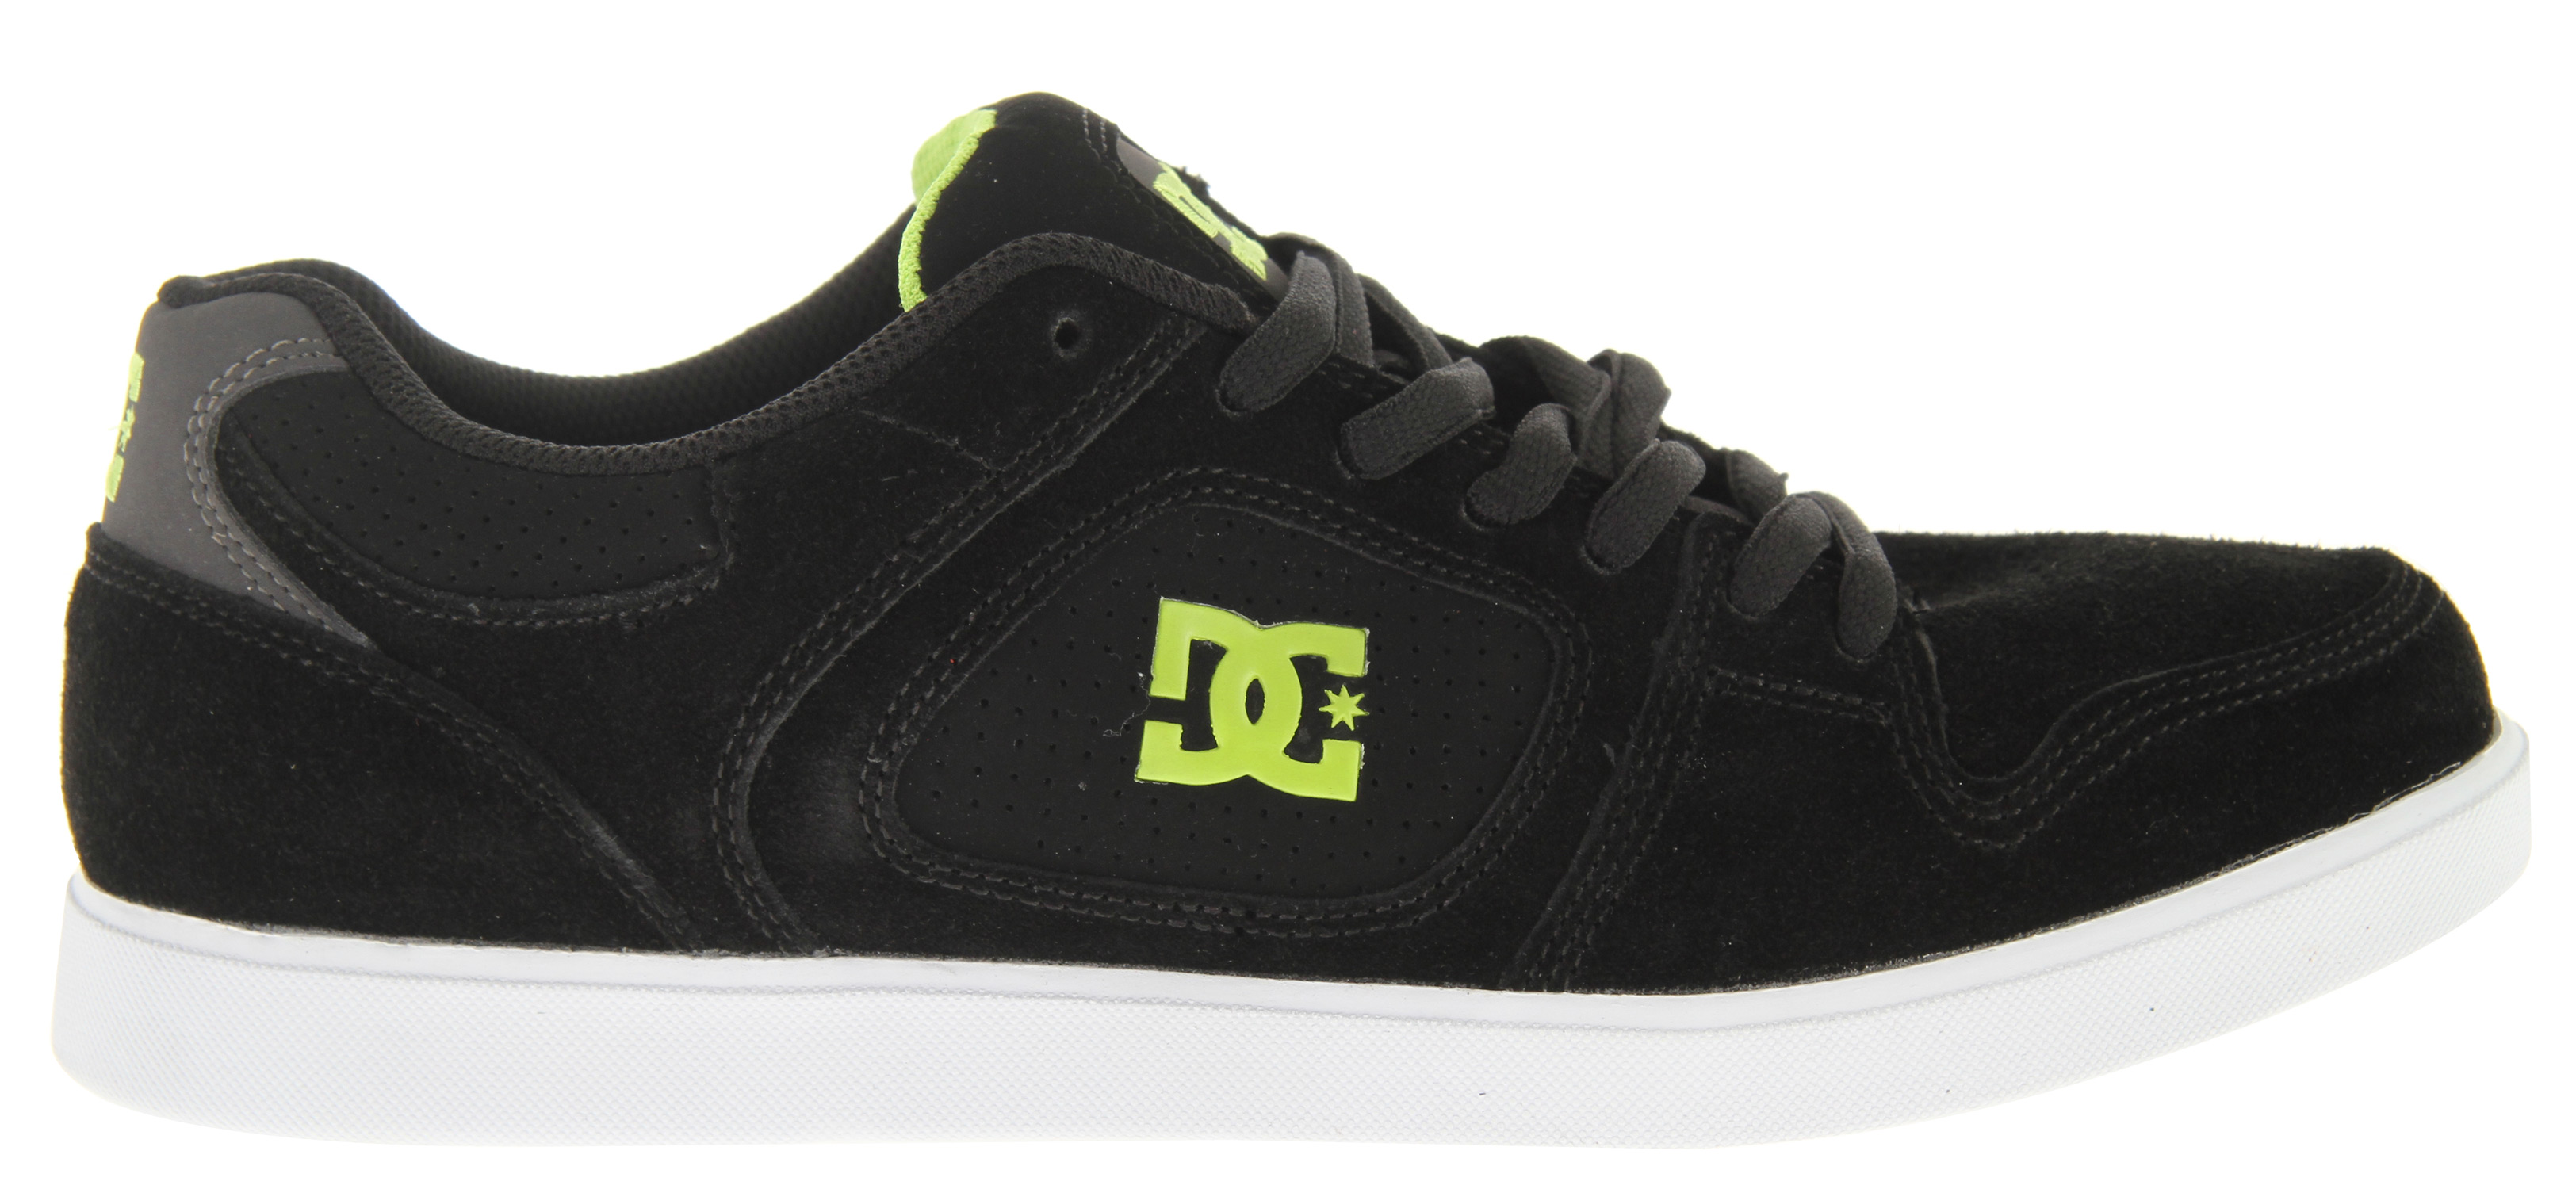 Skateboard Key Features of the DC Union Skate Shoes: Super Suede Soft cushiony sole Sticky outsole - $38.95